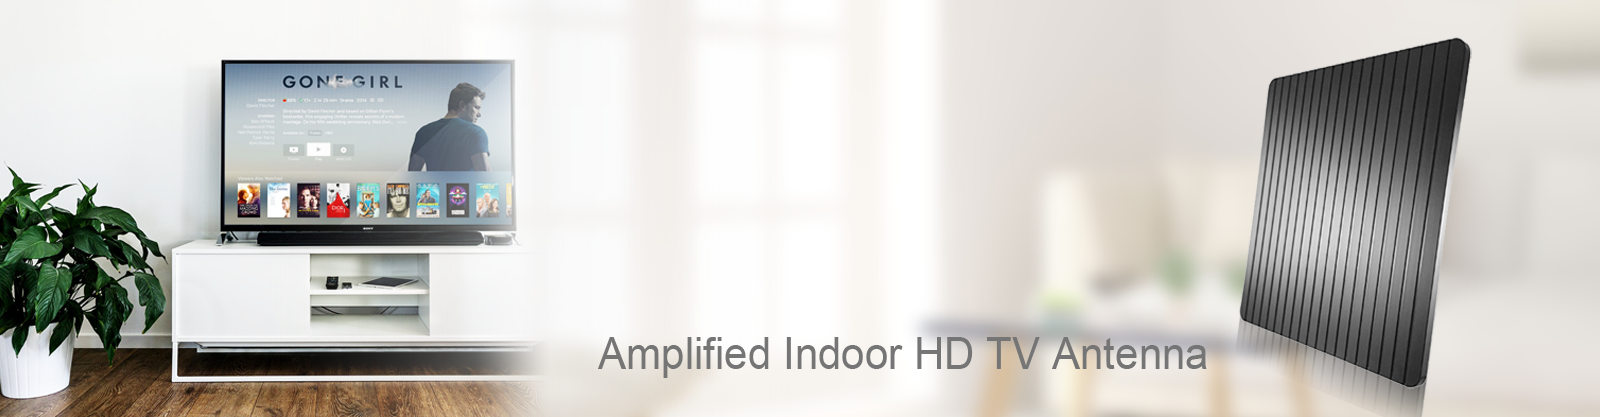 Amplified INDOOR HD TV Antenna